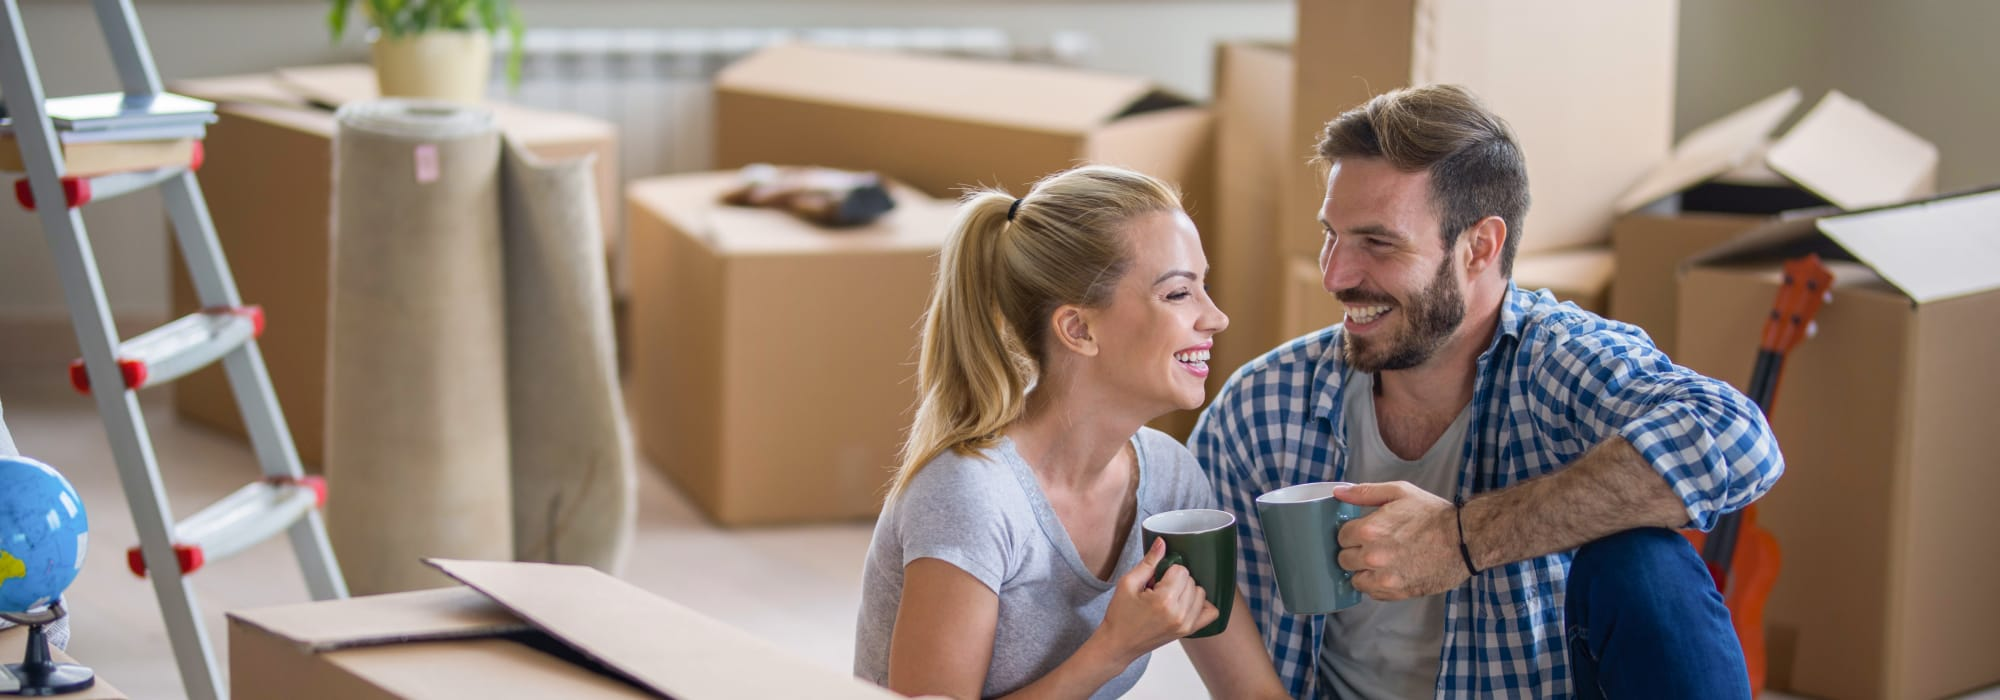 Couple Smiling Amidst Moving Boxes